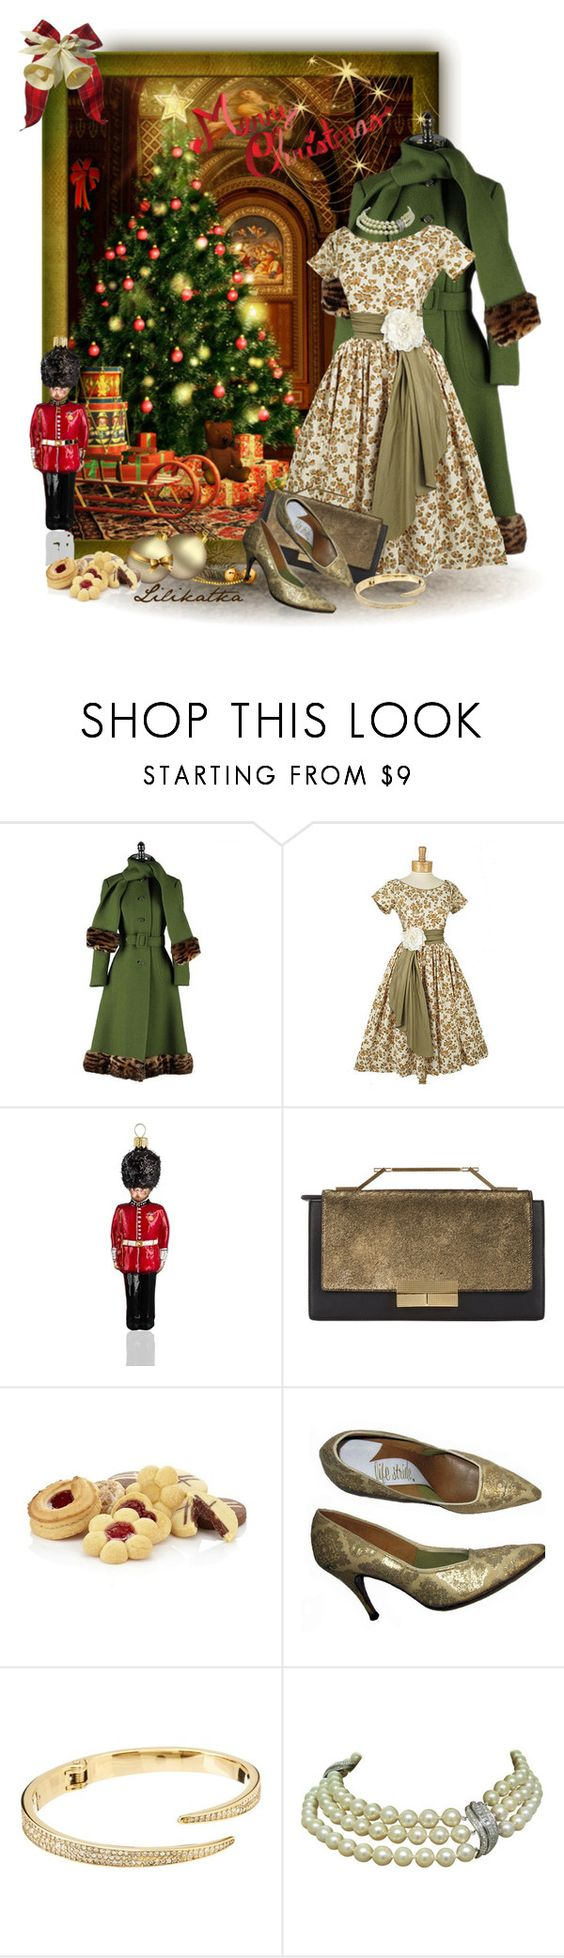 """Pivonka#1195"" by lilikatka ❤ liked on Polyvore featuring Joy To the World, J. Mendel, Harrods, Michael Kors and vintage"